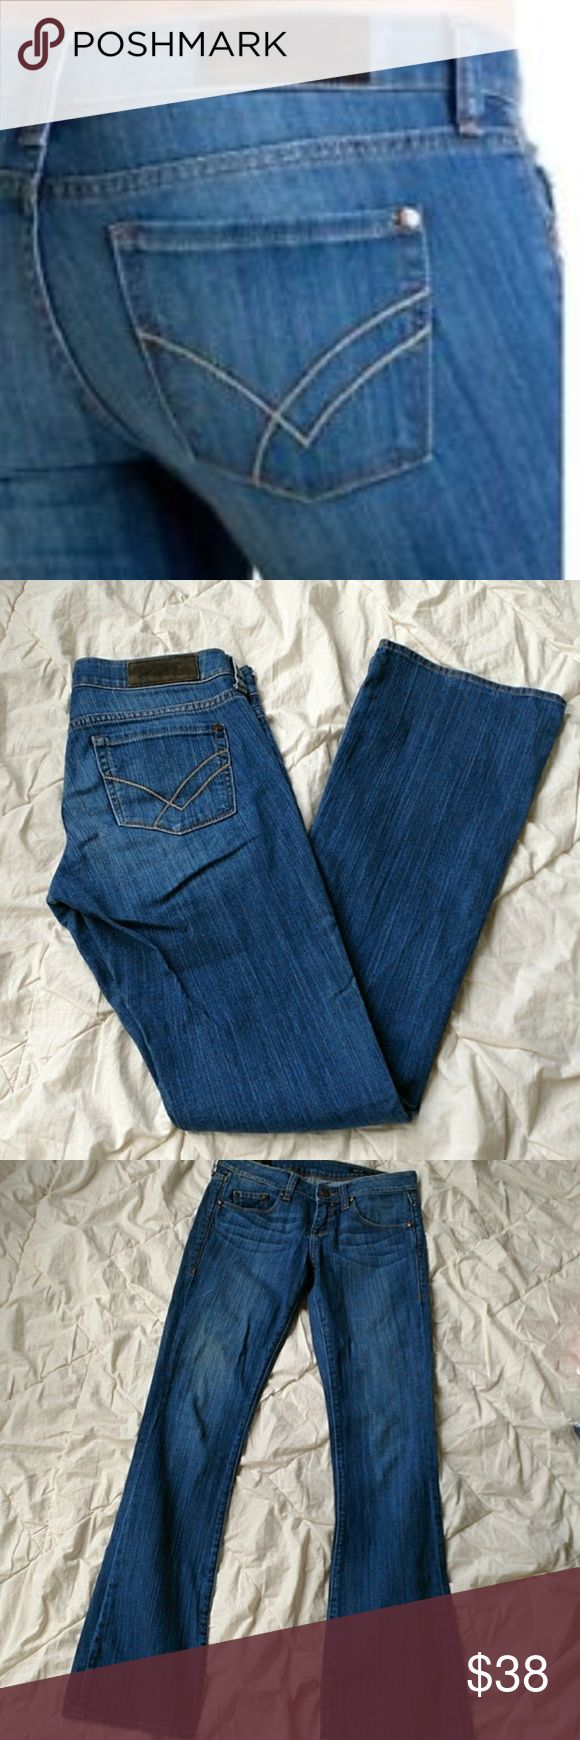 "William Rast | Bootcut Jeans Marmont Madison William Rast women's size 26 'Bootcut Marmont' in Madison. Gently used without flaws.  Flat Lay Waist: 15"" Rise: 8"" Inseam: 33""  J1-108 William Rast Jeans Boot Cut"